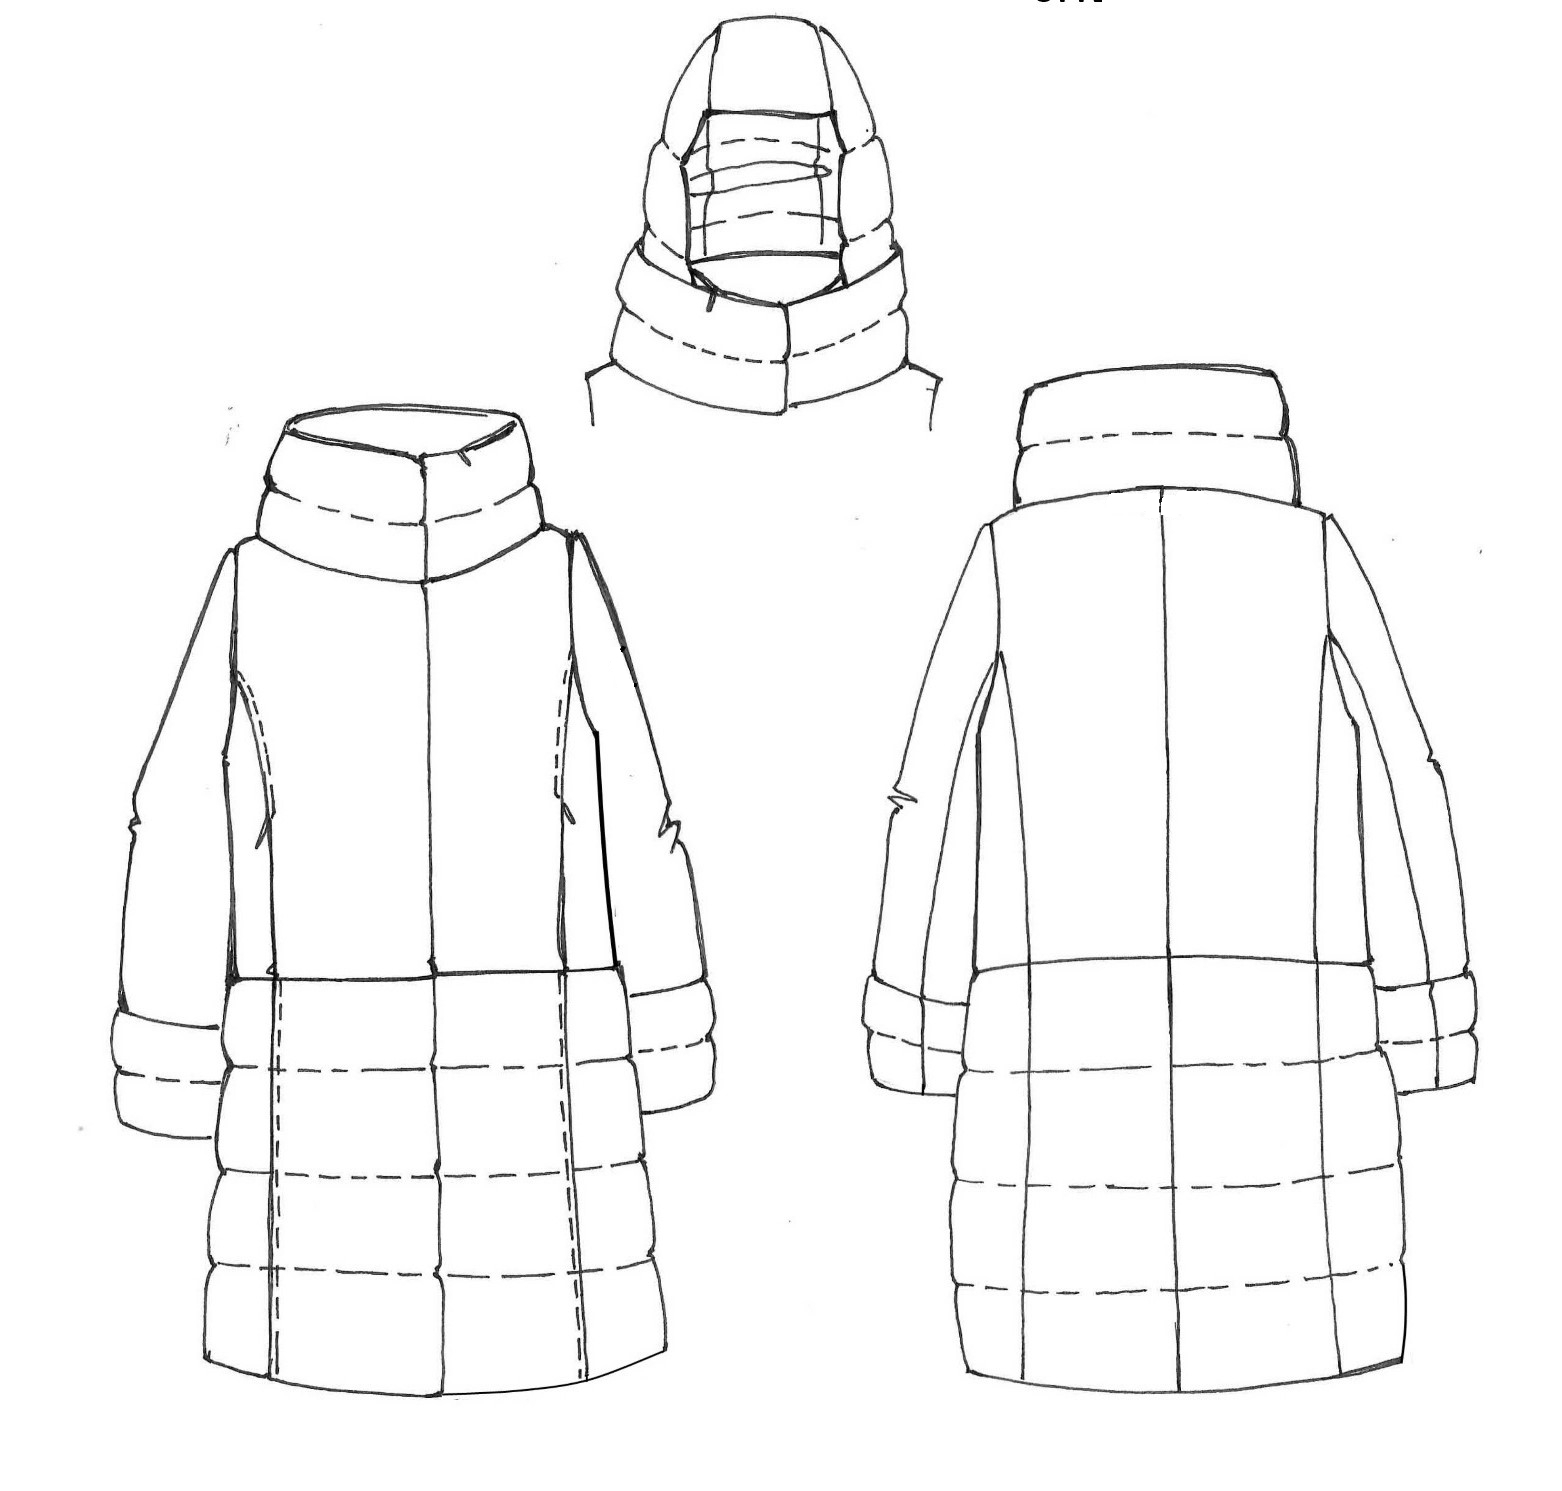 AK EUROPE JACKET DRAWINGS